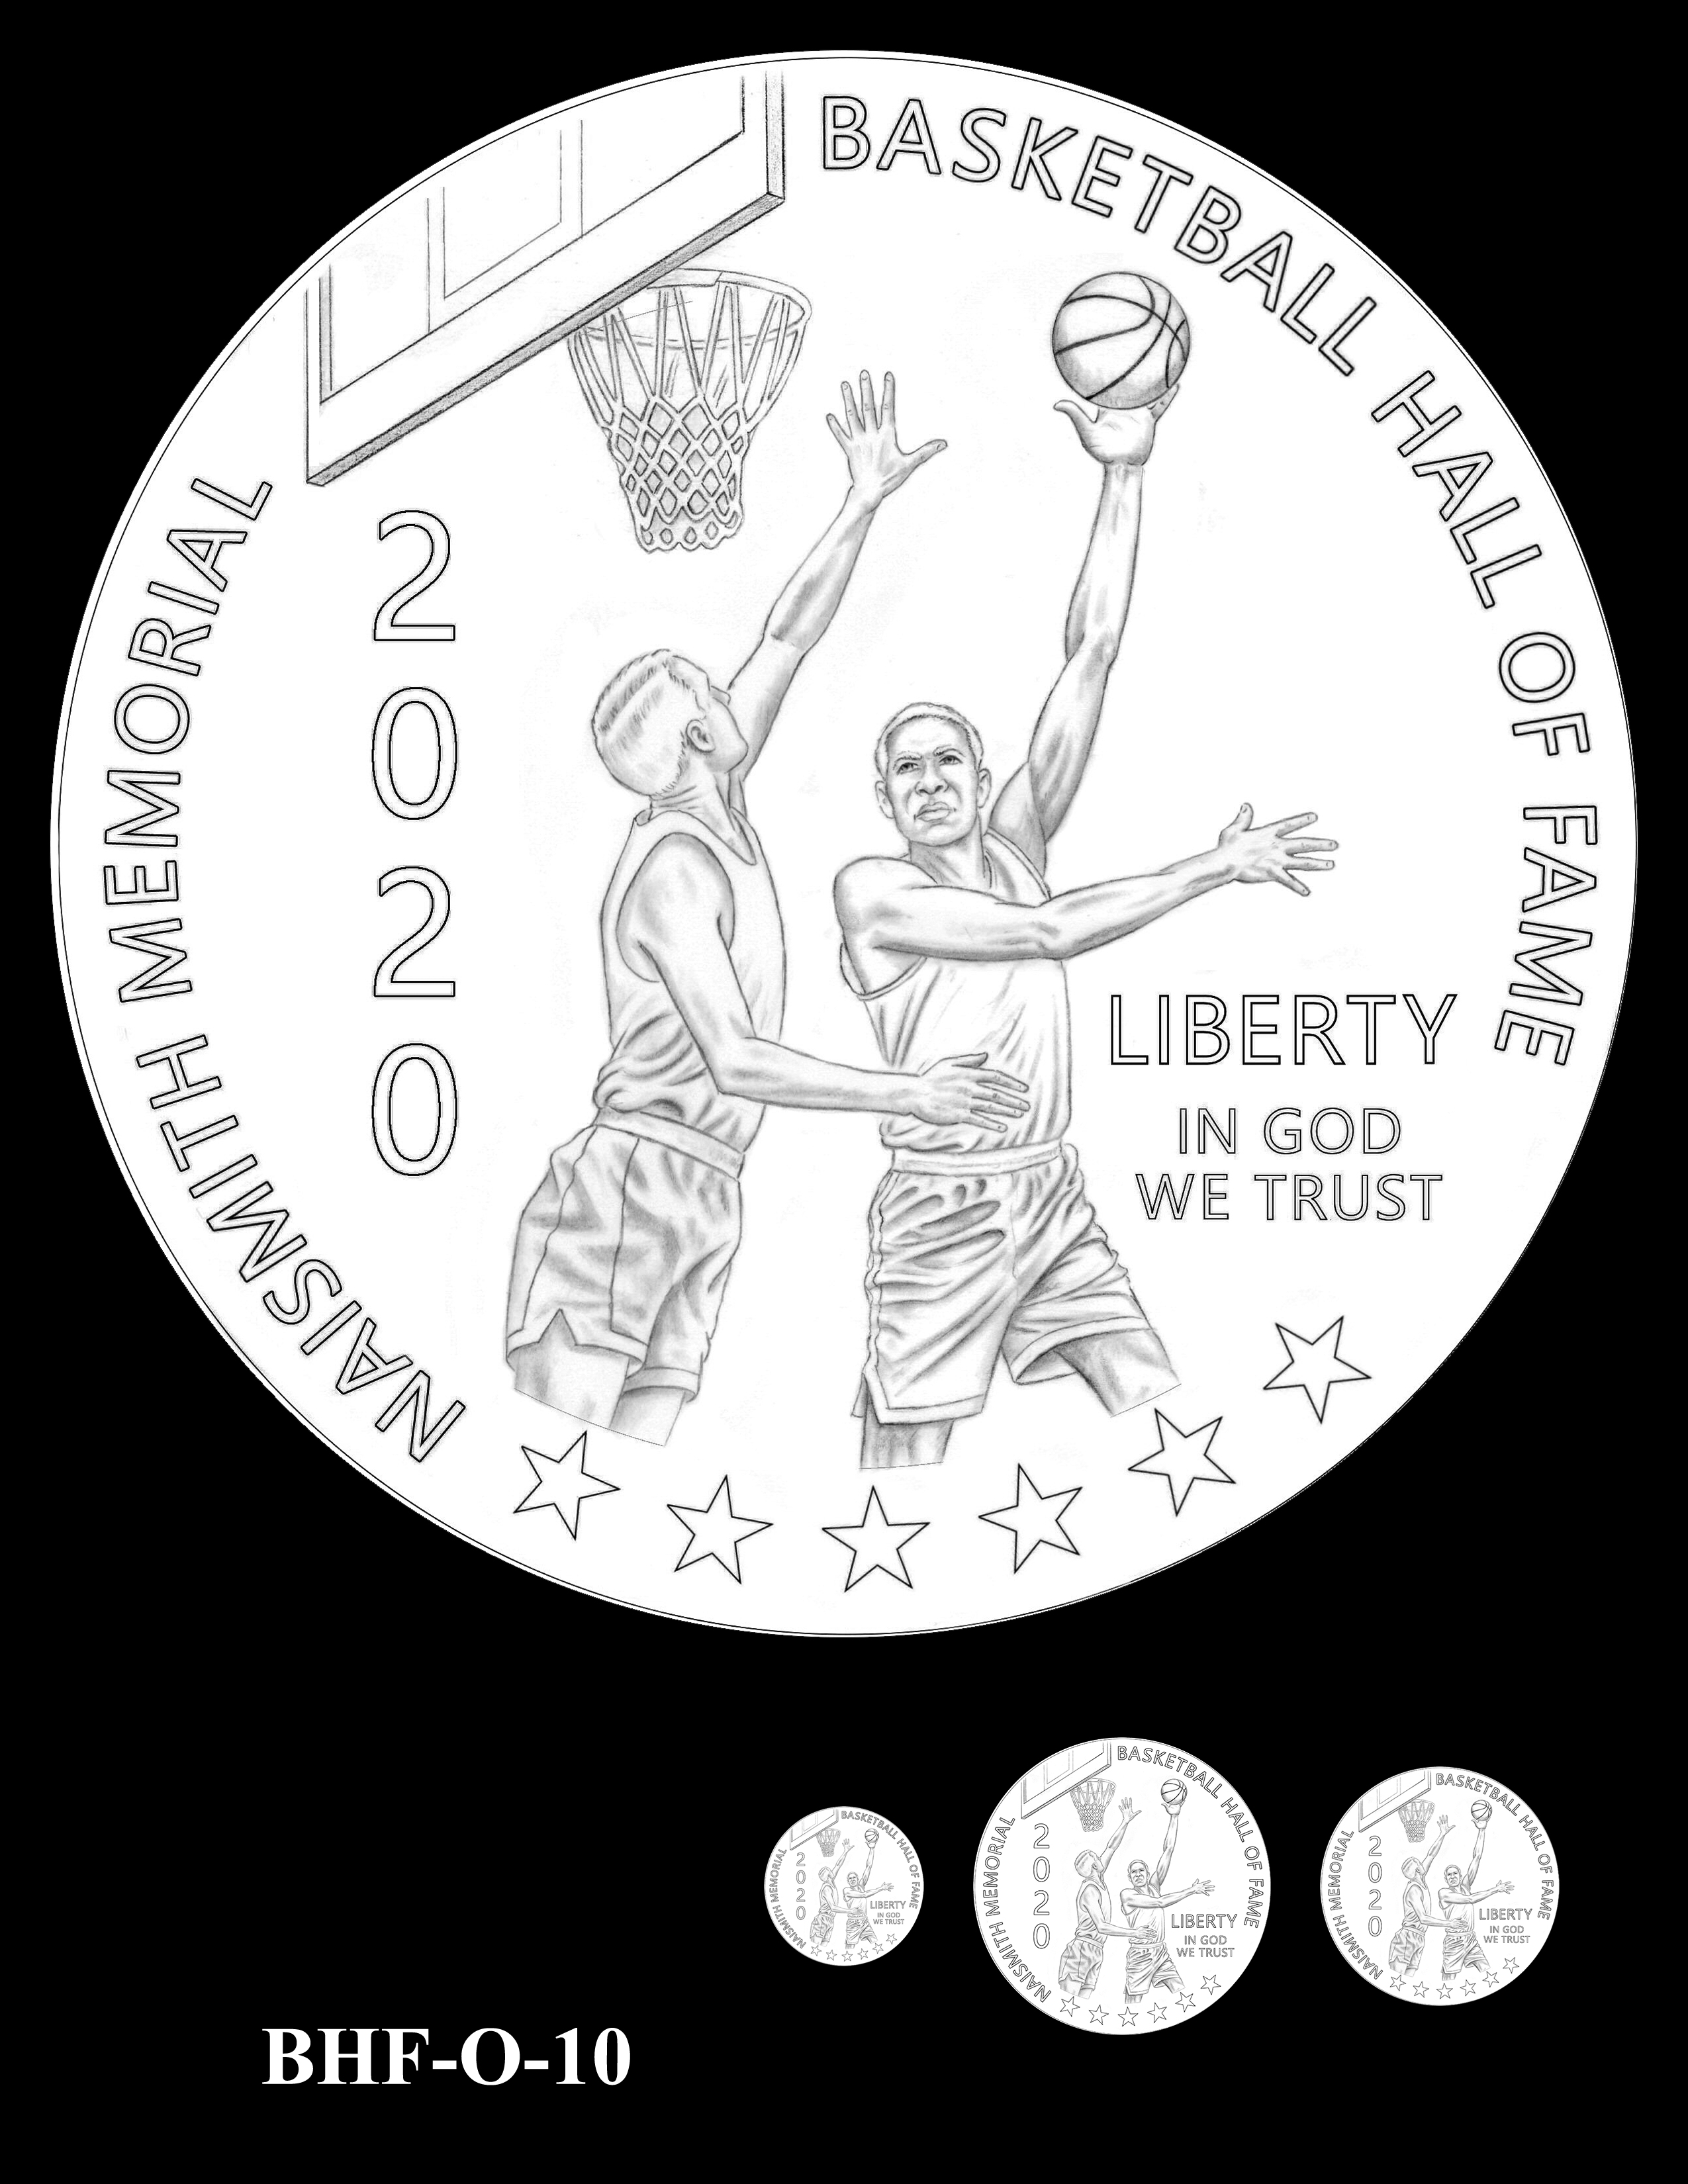 BHF-O-10 -- 2020 Basketball Hall of Fame Commemorative Coin Program - Common Obverse